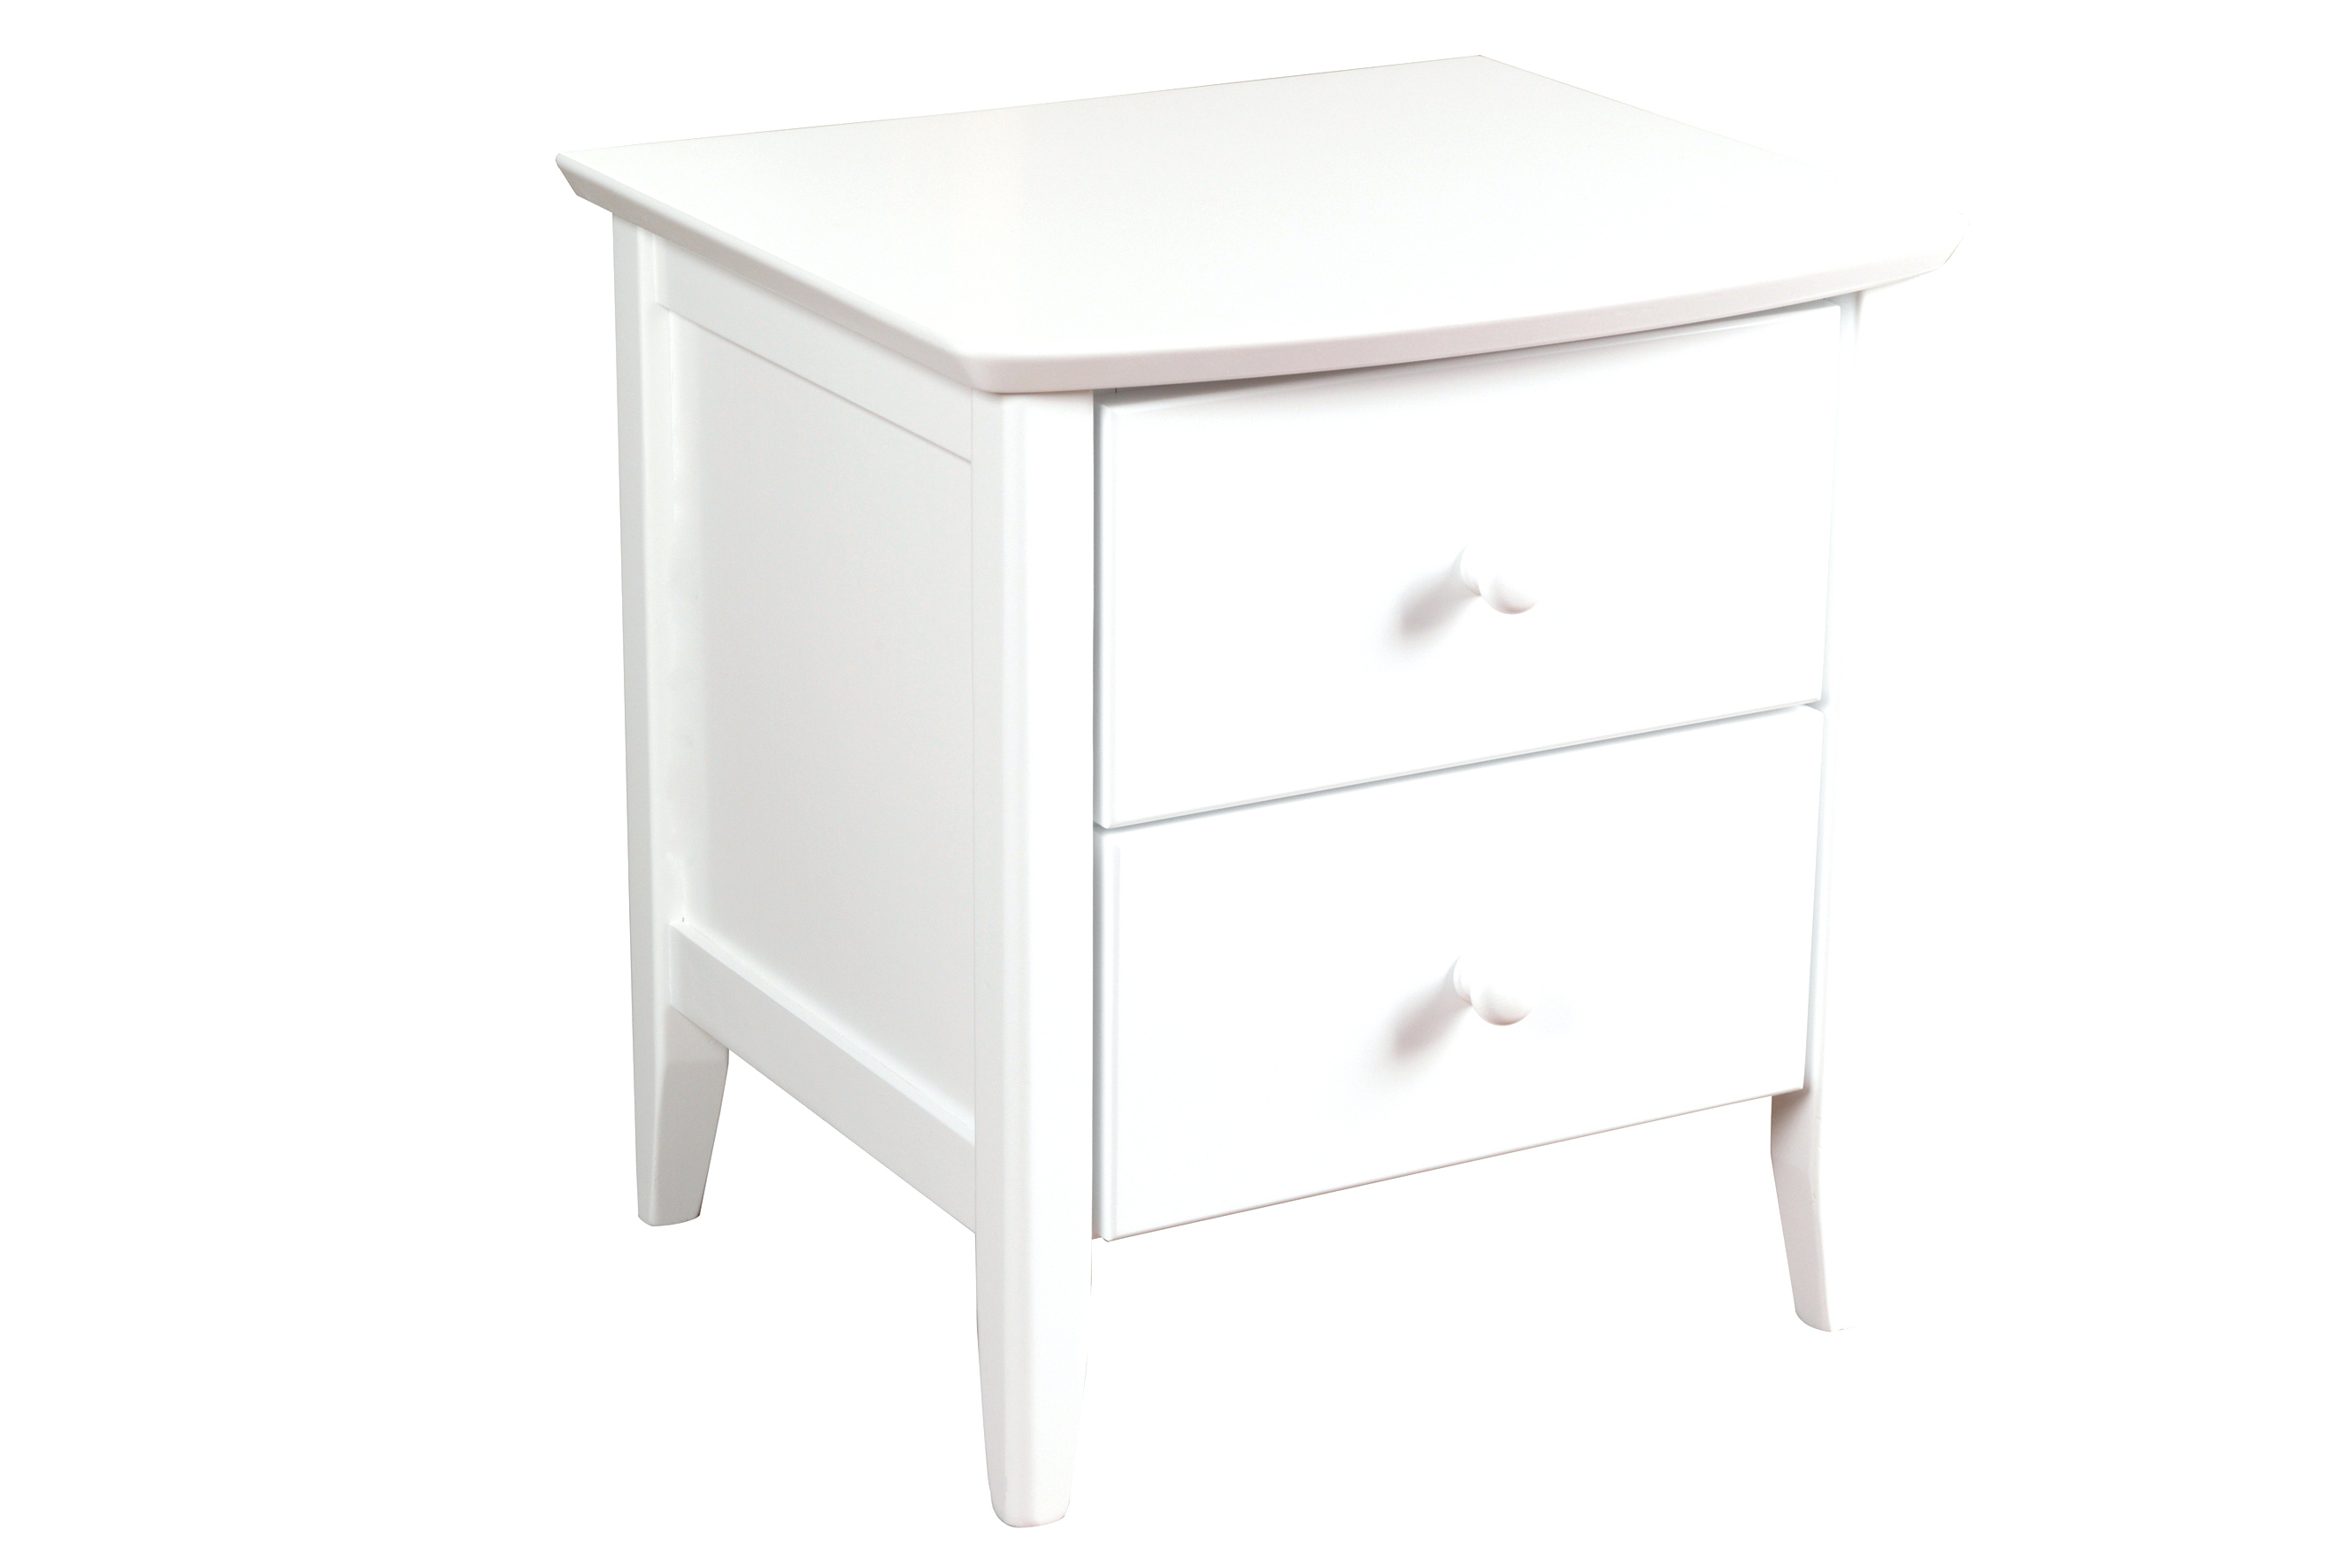 absolutely design bedside tables kmart small side white gloss lacquer sizing industrial table outdoor target astounding scandi and pillow weirdmonger dark cherry end sheesham wood